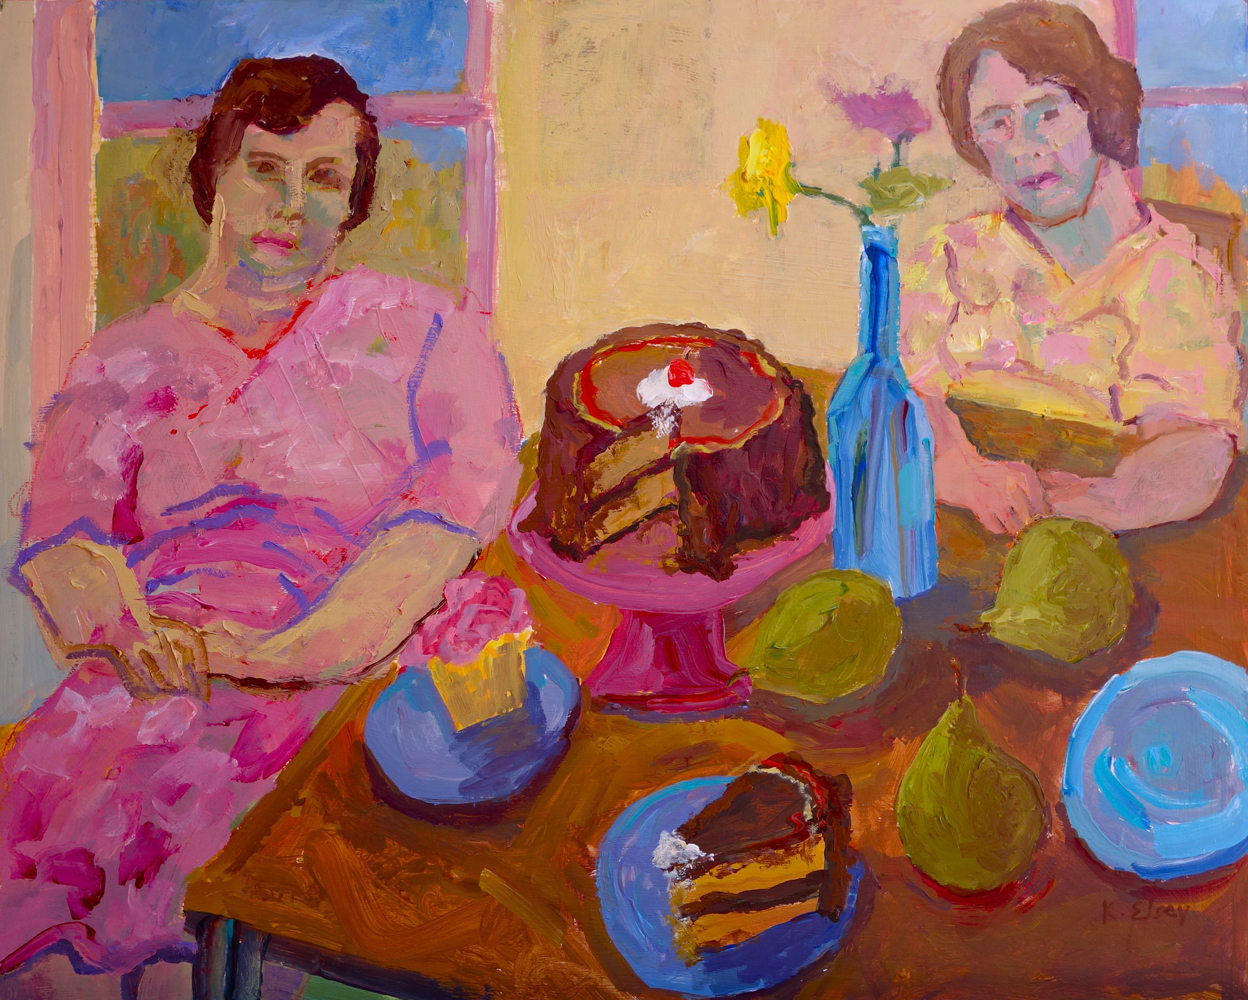 Sisters with Cake,16 x 20,acrylic on canvas